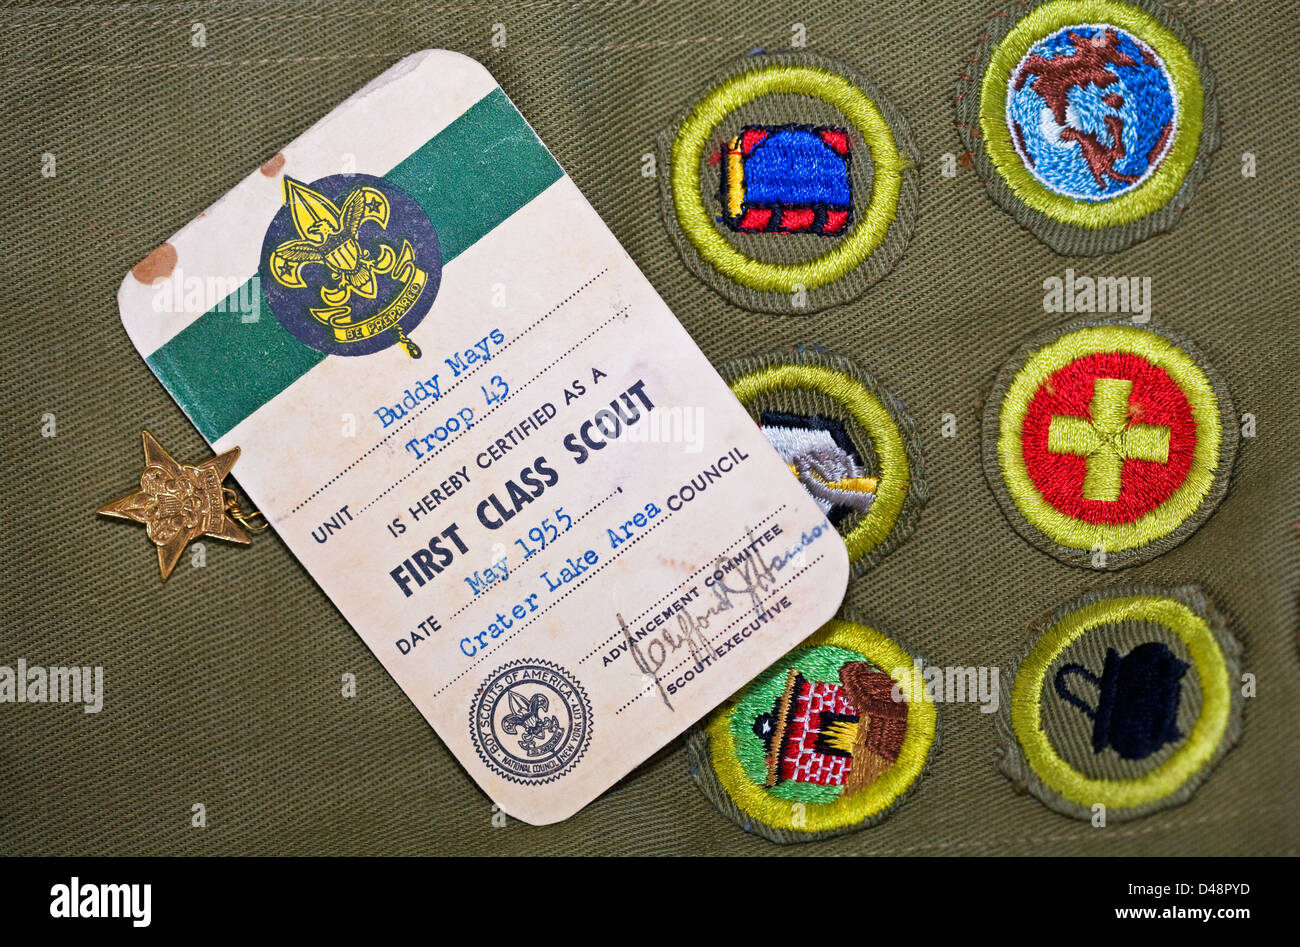 First Merit Badge Class Worksheets for all | Download and Share ...